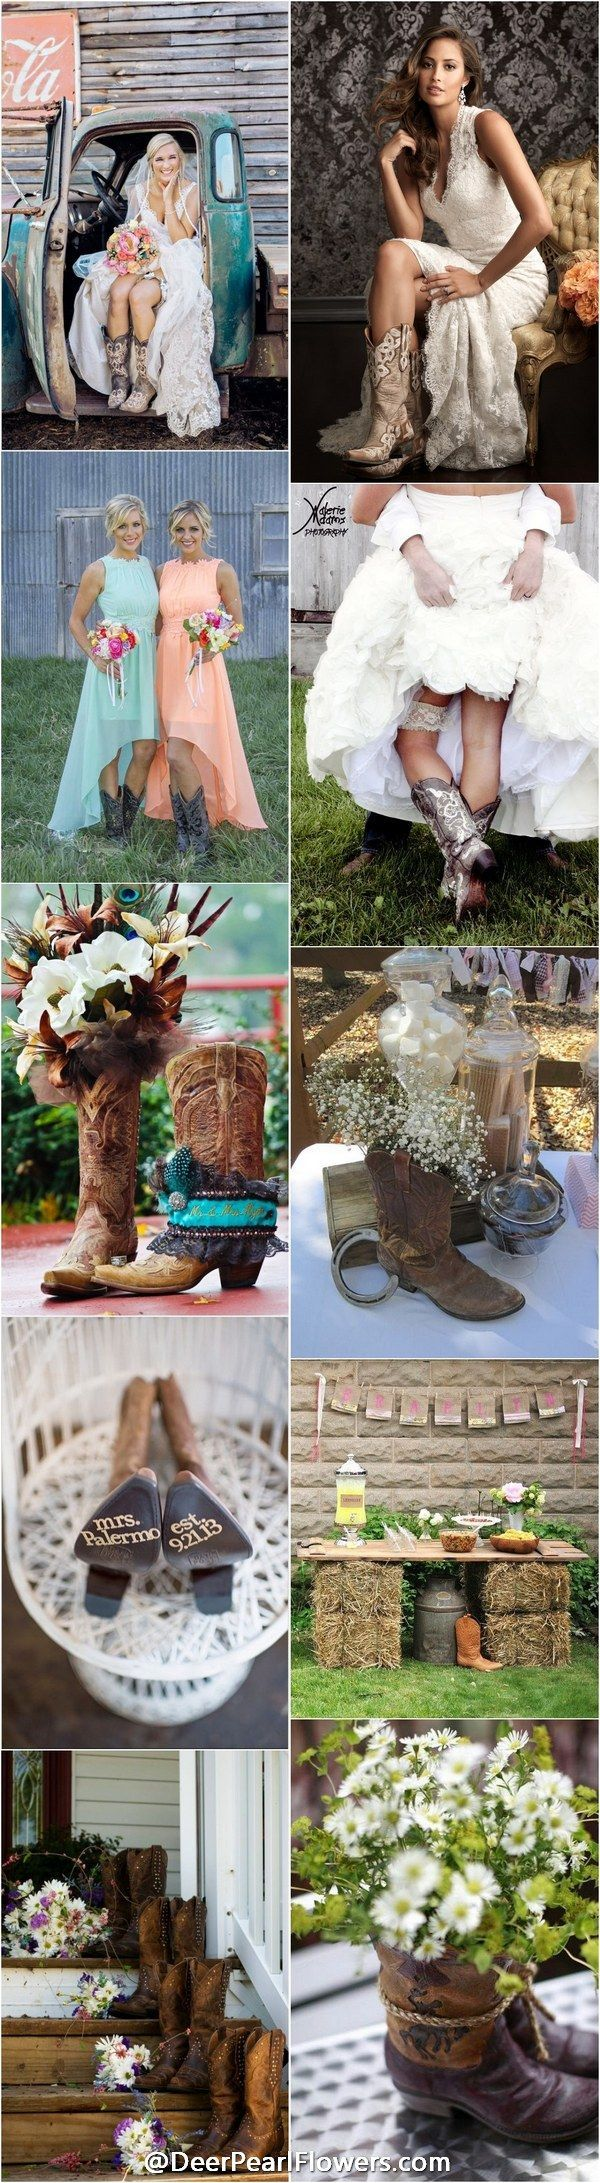 incredible Cowgirl Wedding Ideas Part - 11: 40 Rustic Country Cowgirl Boots Fall Wedding Ideas | Cool WEDDING IDEAS |  Pinterest | Wedding, Cowgirl wedding and Fall Wedding